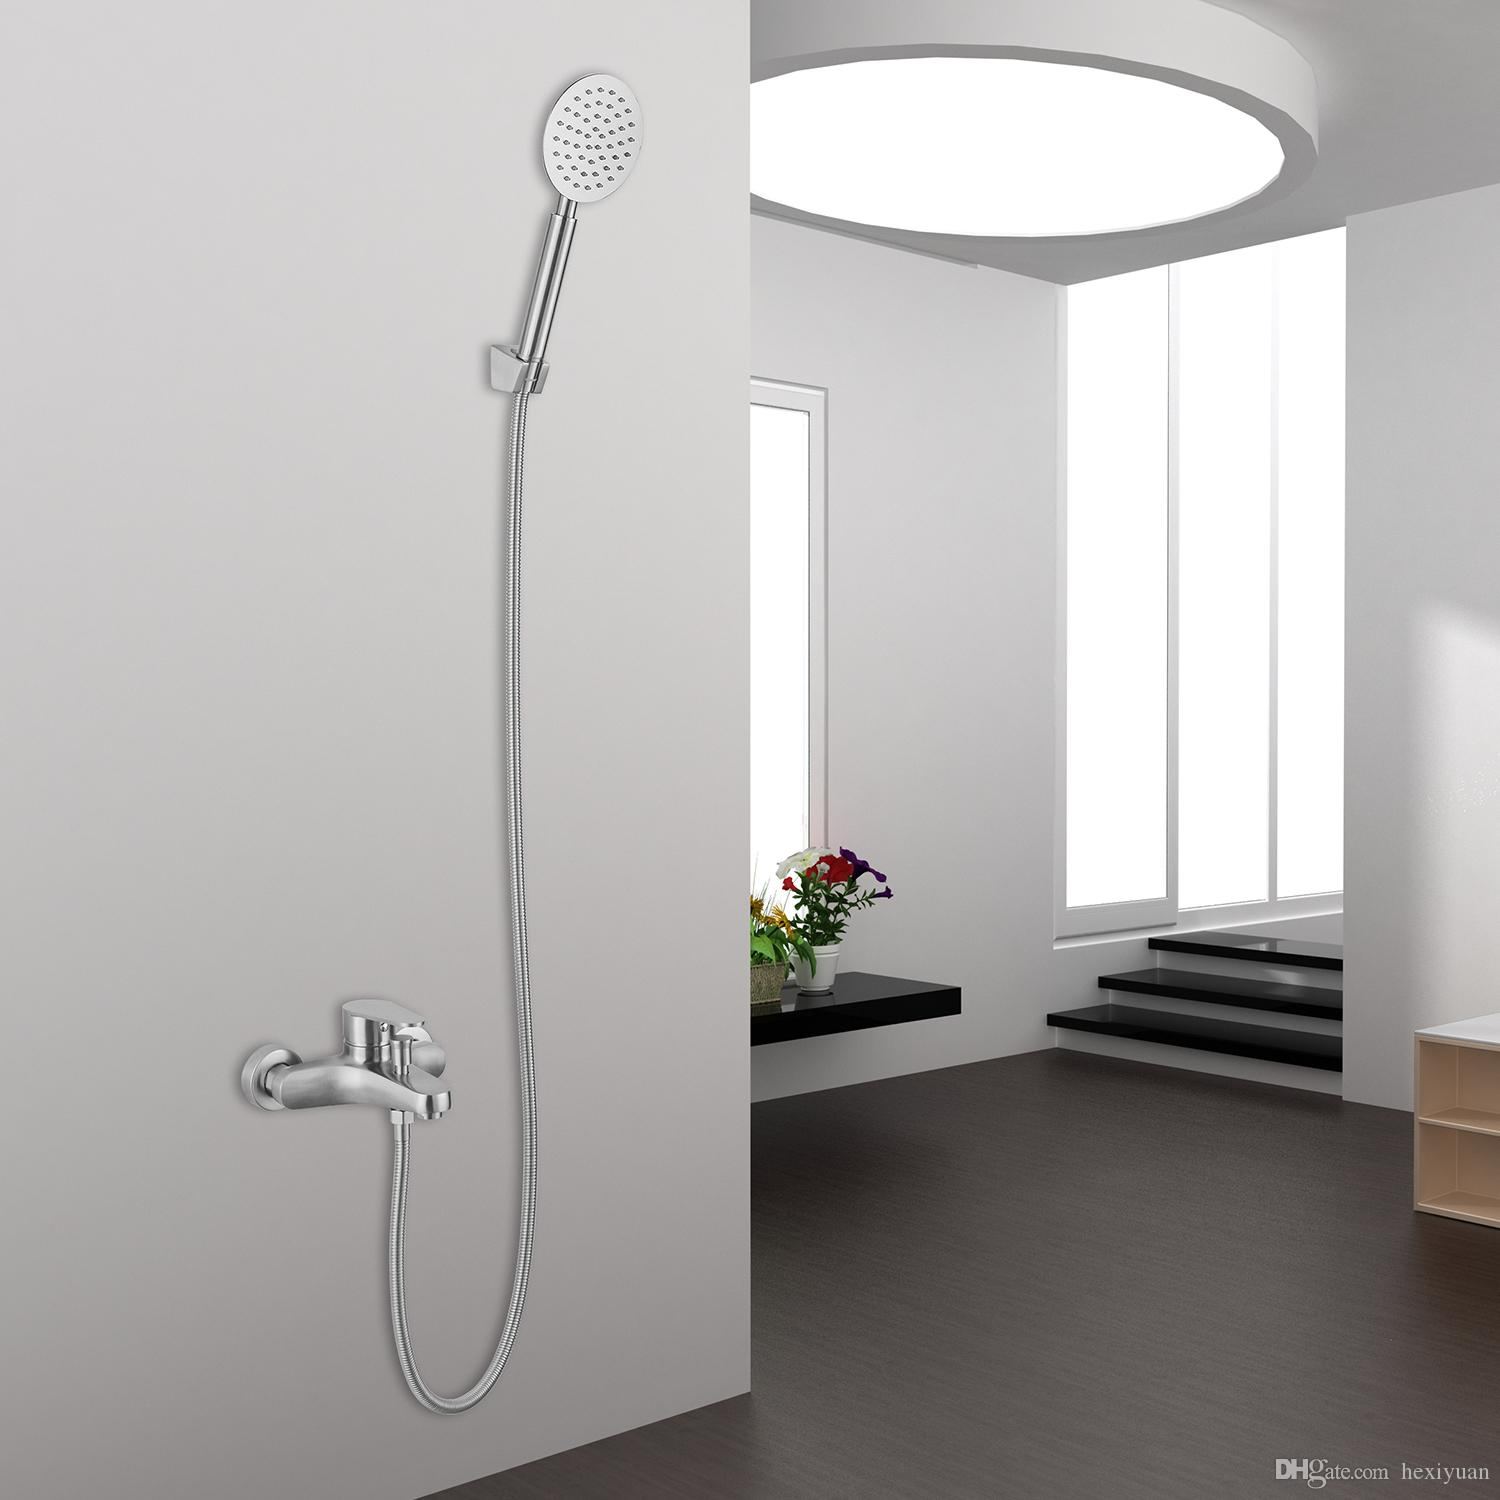 2018 304 Stainless Steel Bathtub Shower Faucet Shower Head Hot And ...